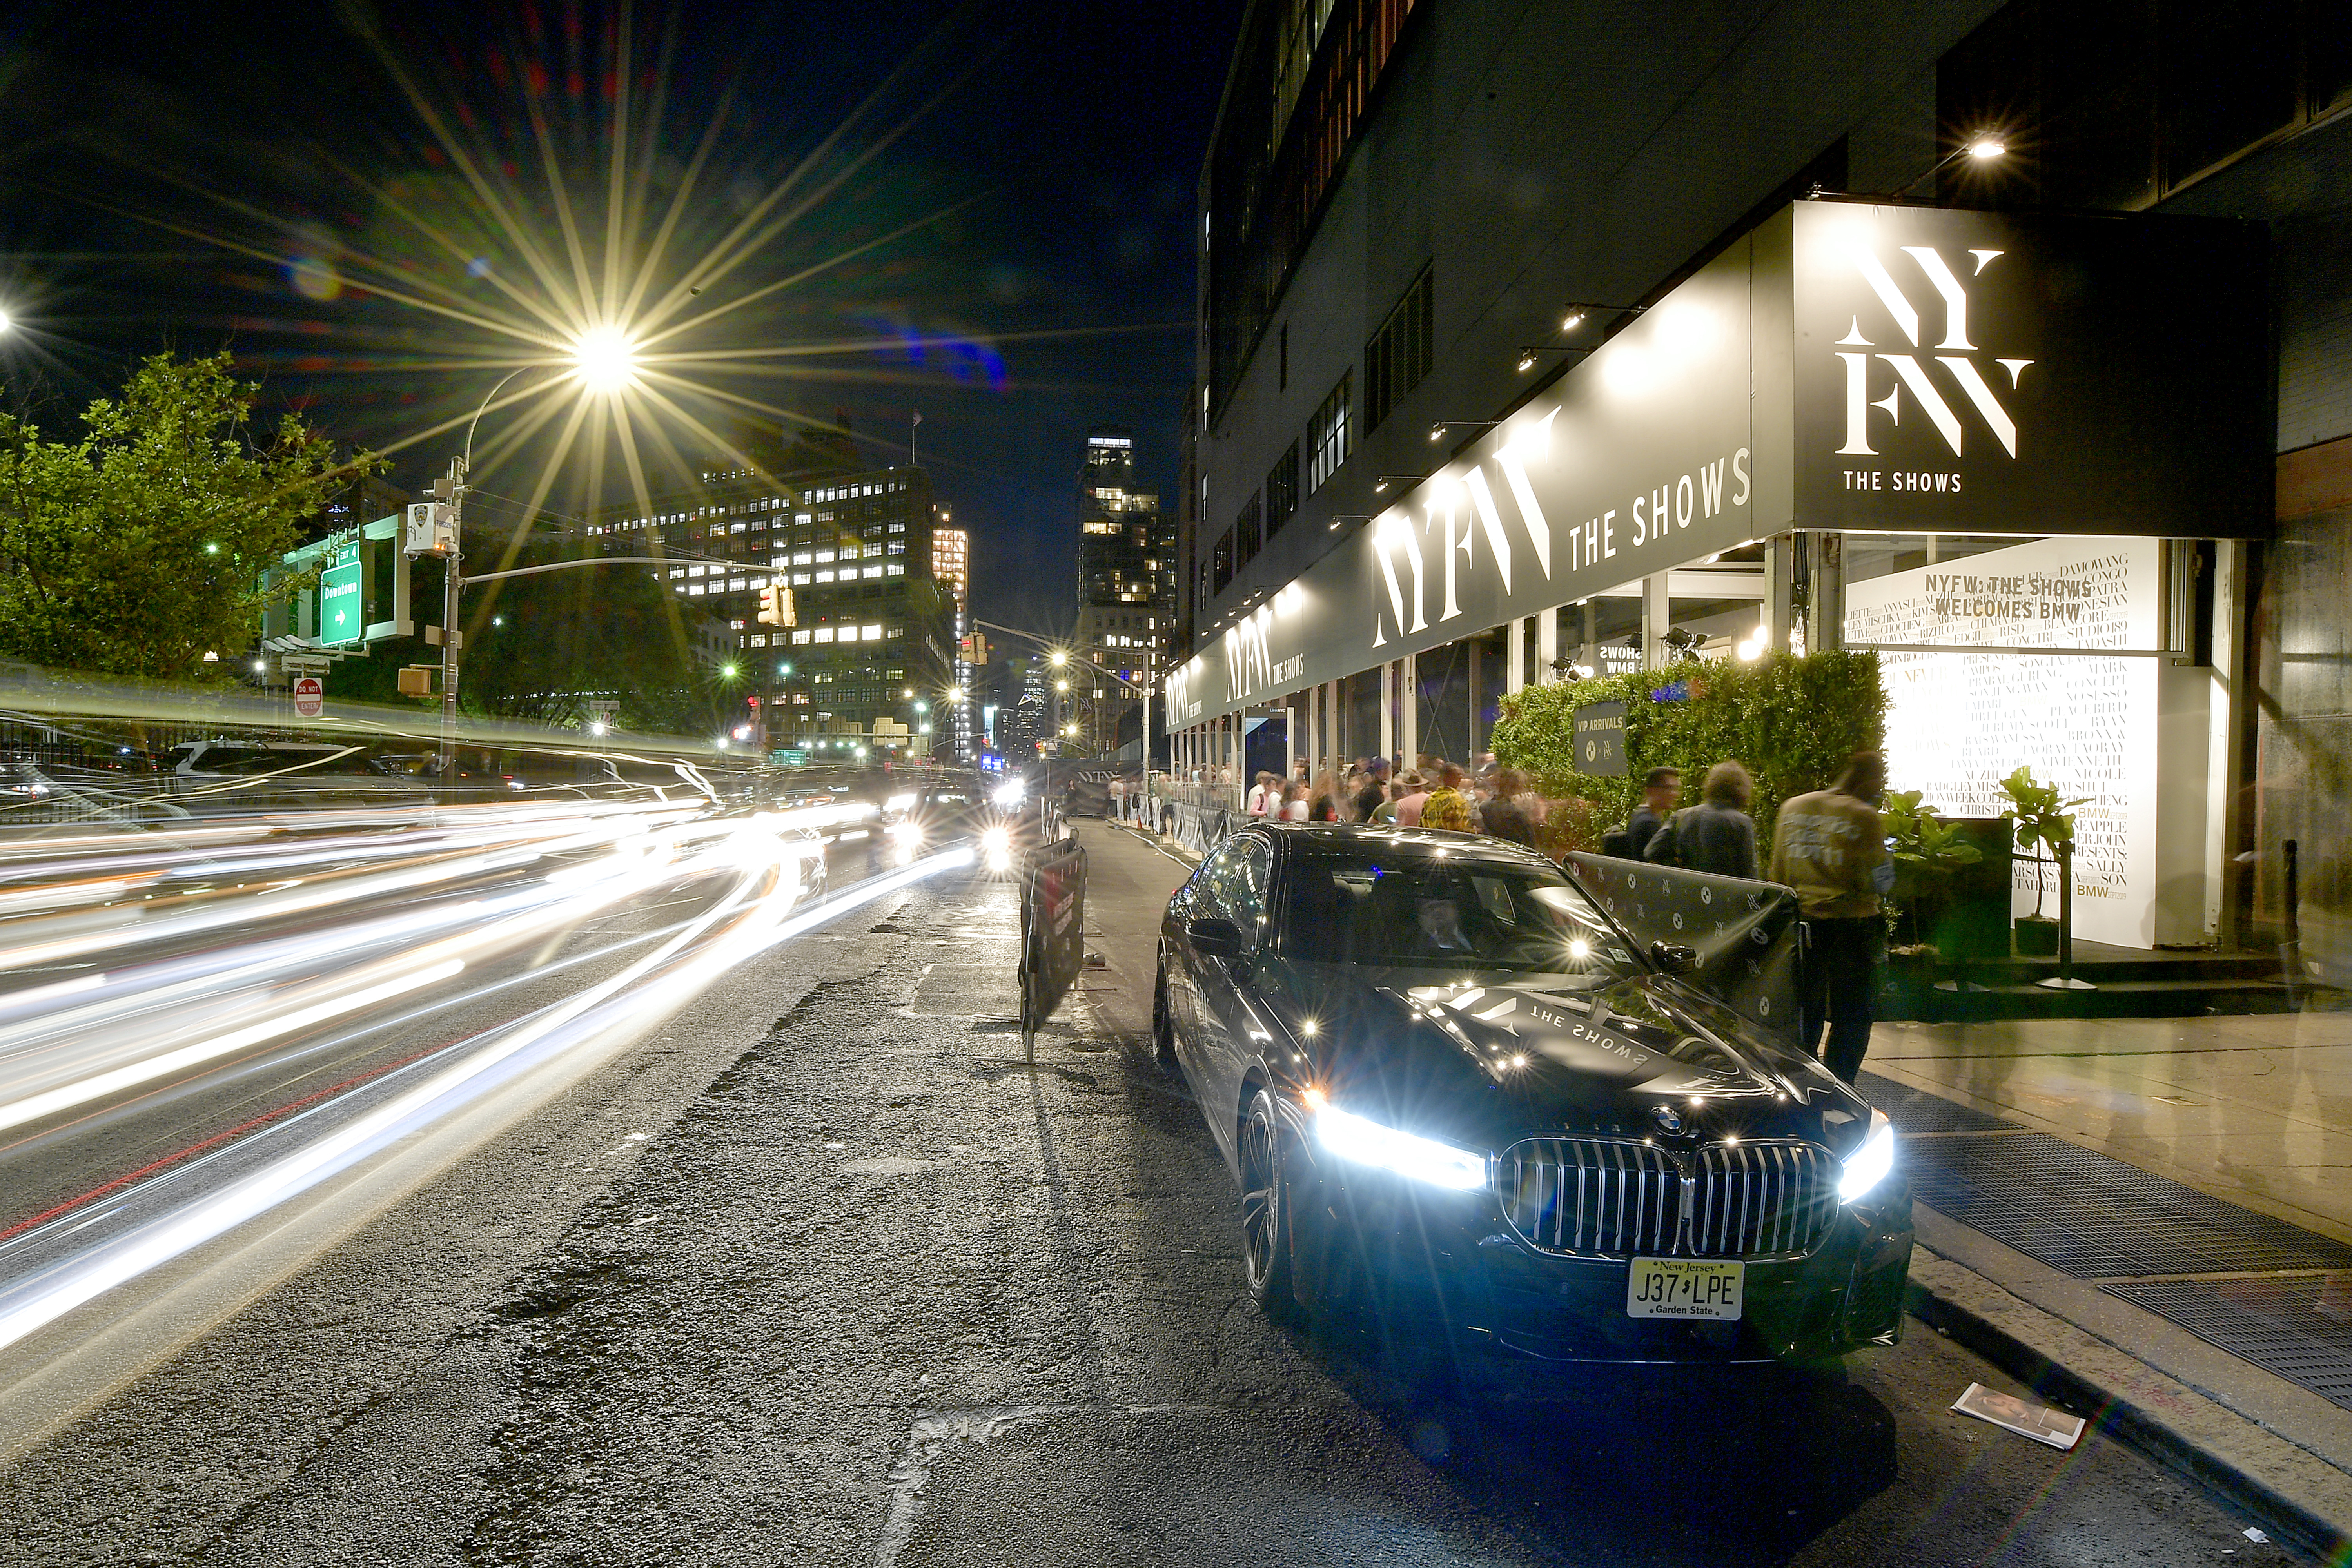 NEW YORK, NEW YORK - SEPTEMBER 08: A wide view of BMW vehicles outside the BMW x NYFW VIP check in during New York Fashion Week: The Shows at Spring Studios on September 08, 2019 in New York City. (Photo by Roy Rochlin/Roy Rochlin)